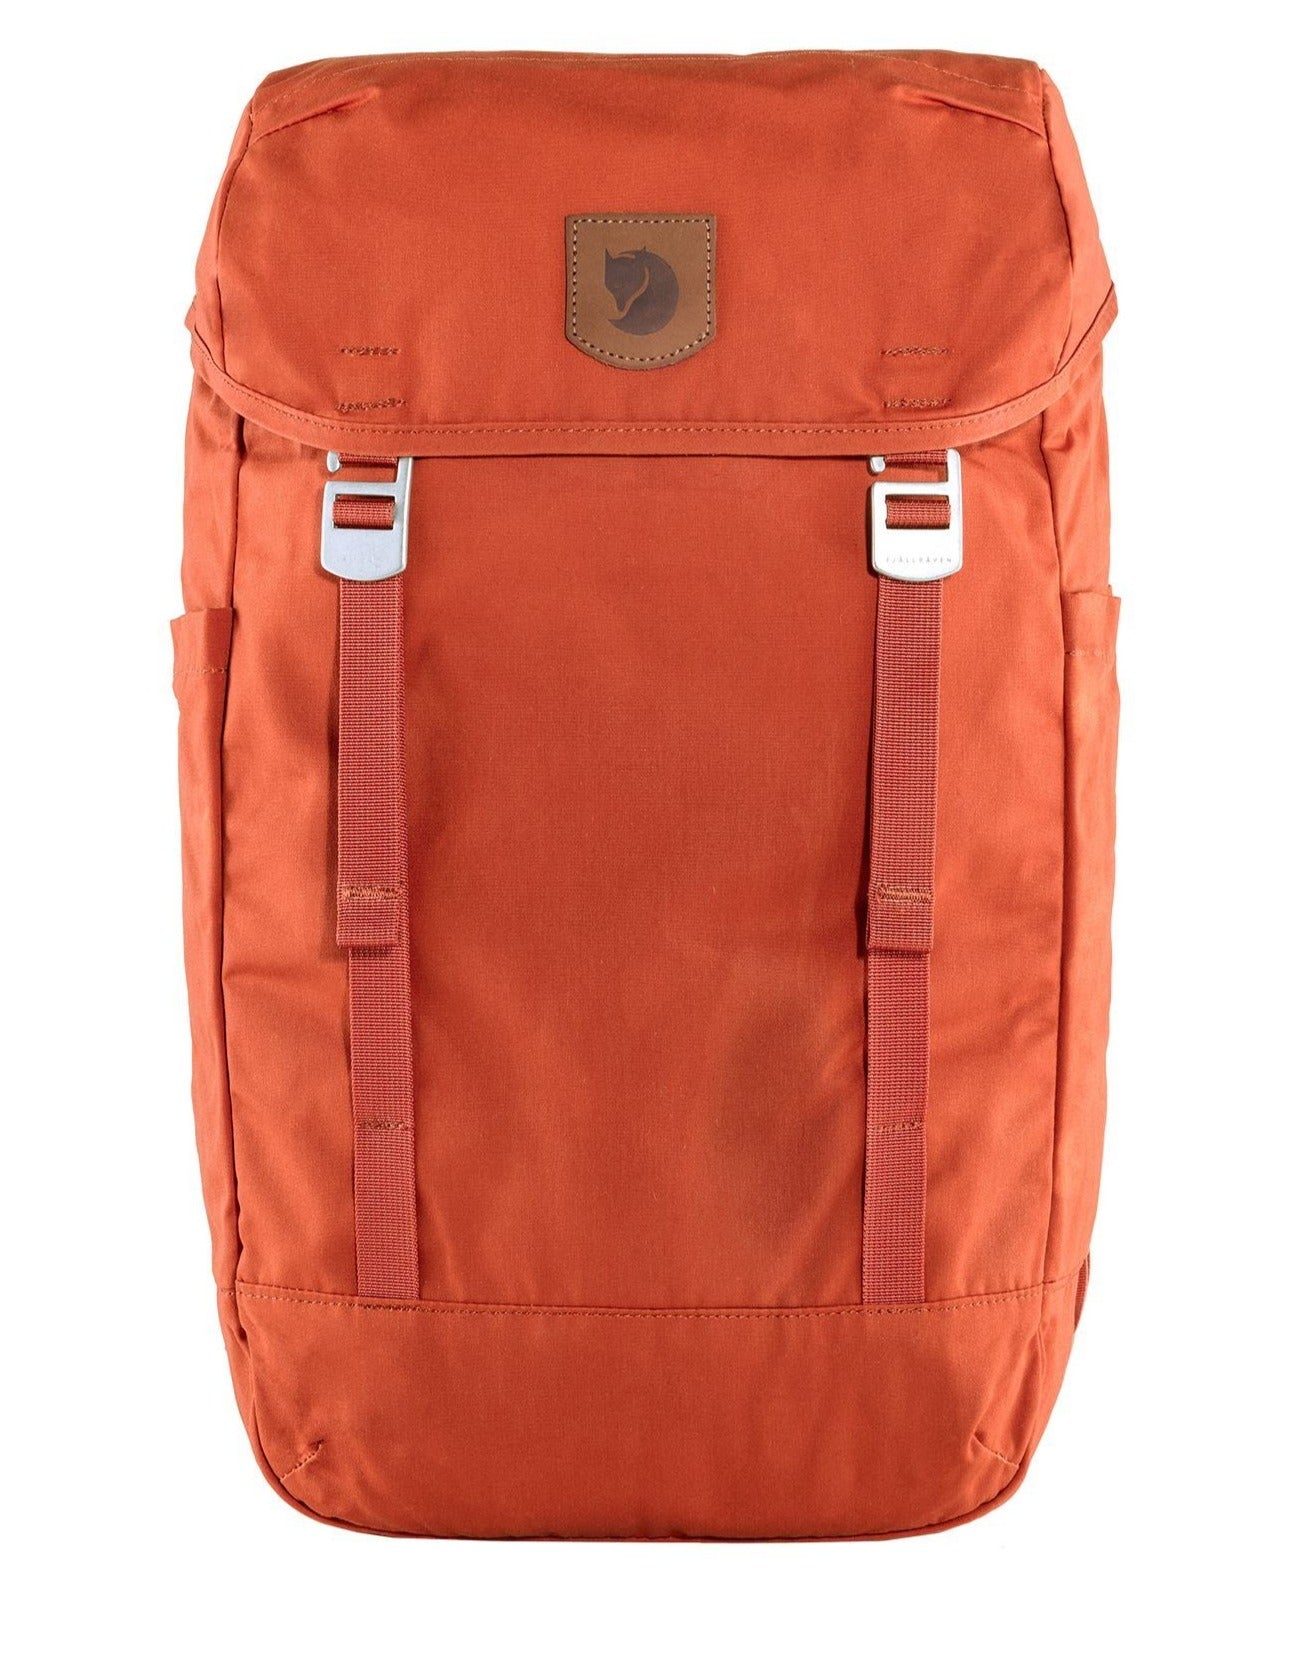 Supreme all-rounder and everyday backpack from masters Fjällräven, the Greenland Top is a top-loaded backpack with inside laptop compartment, plenty of storage and extra compartment space in easily accessible pockets and comfortable straps. Comes in a light red.